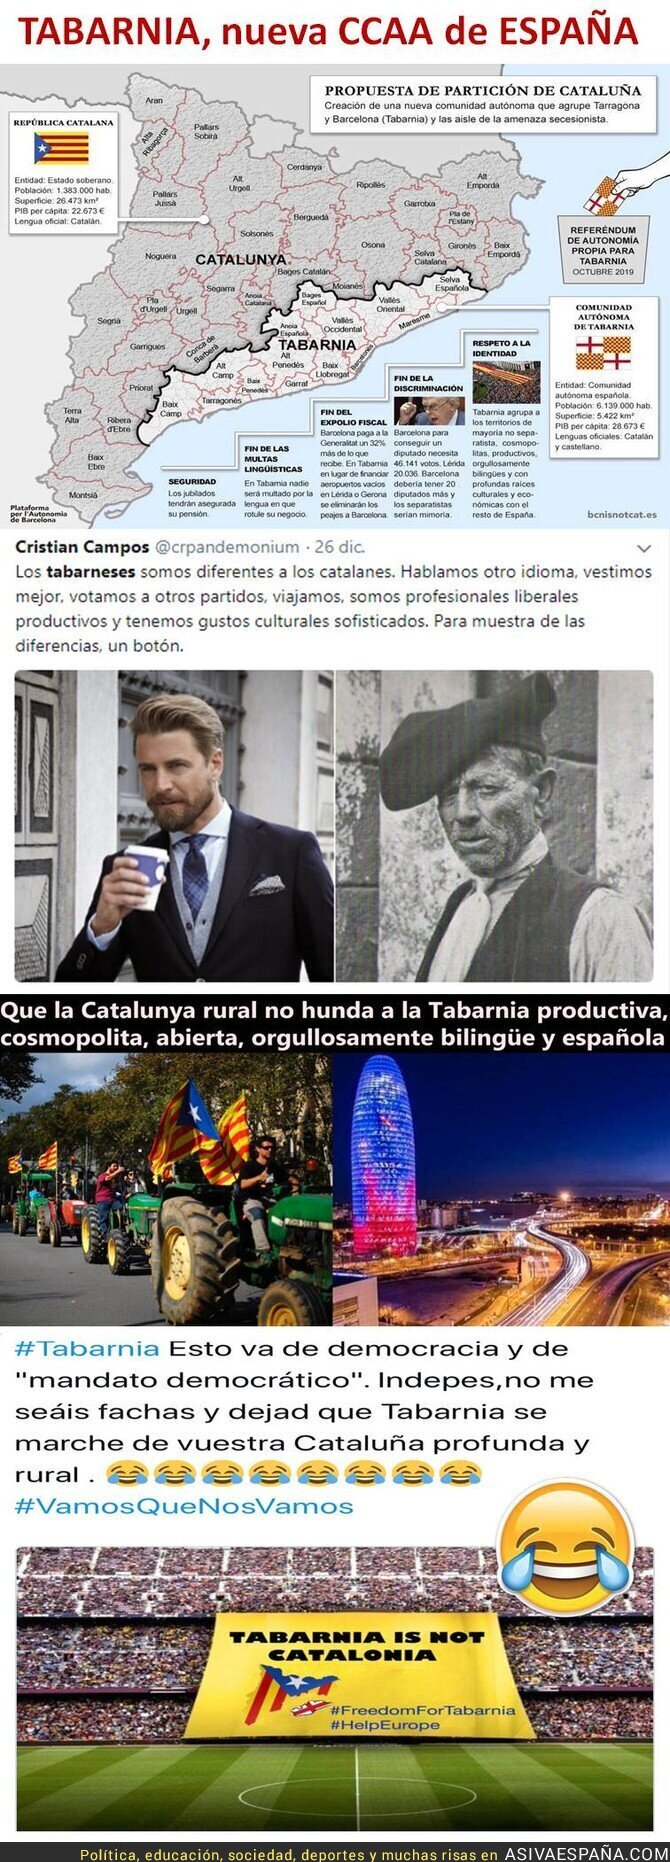 80685 - Tabarnia is not Catalonia